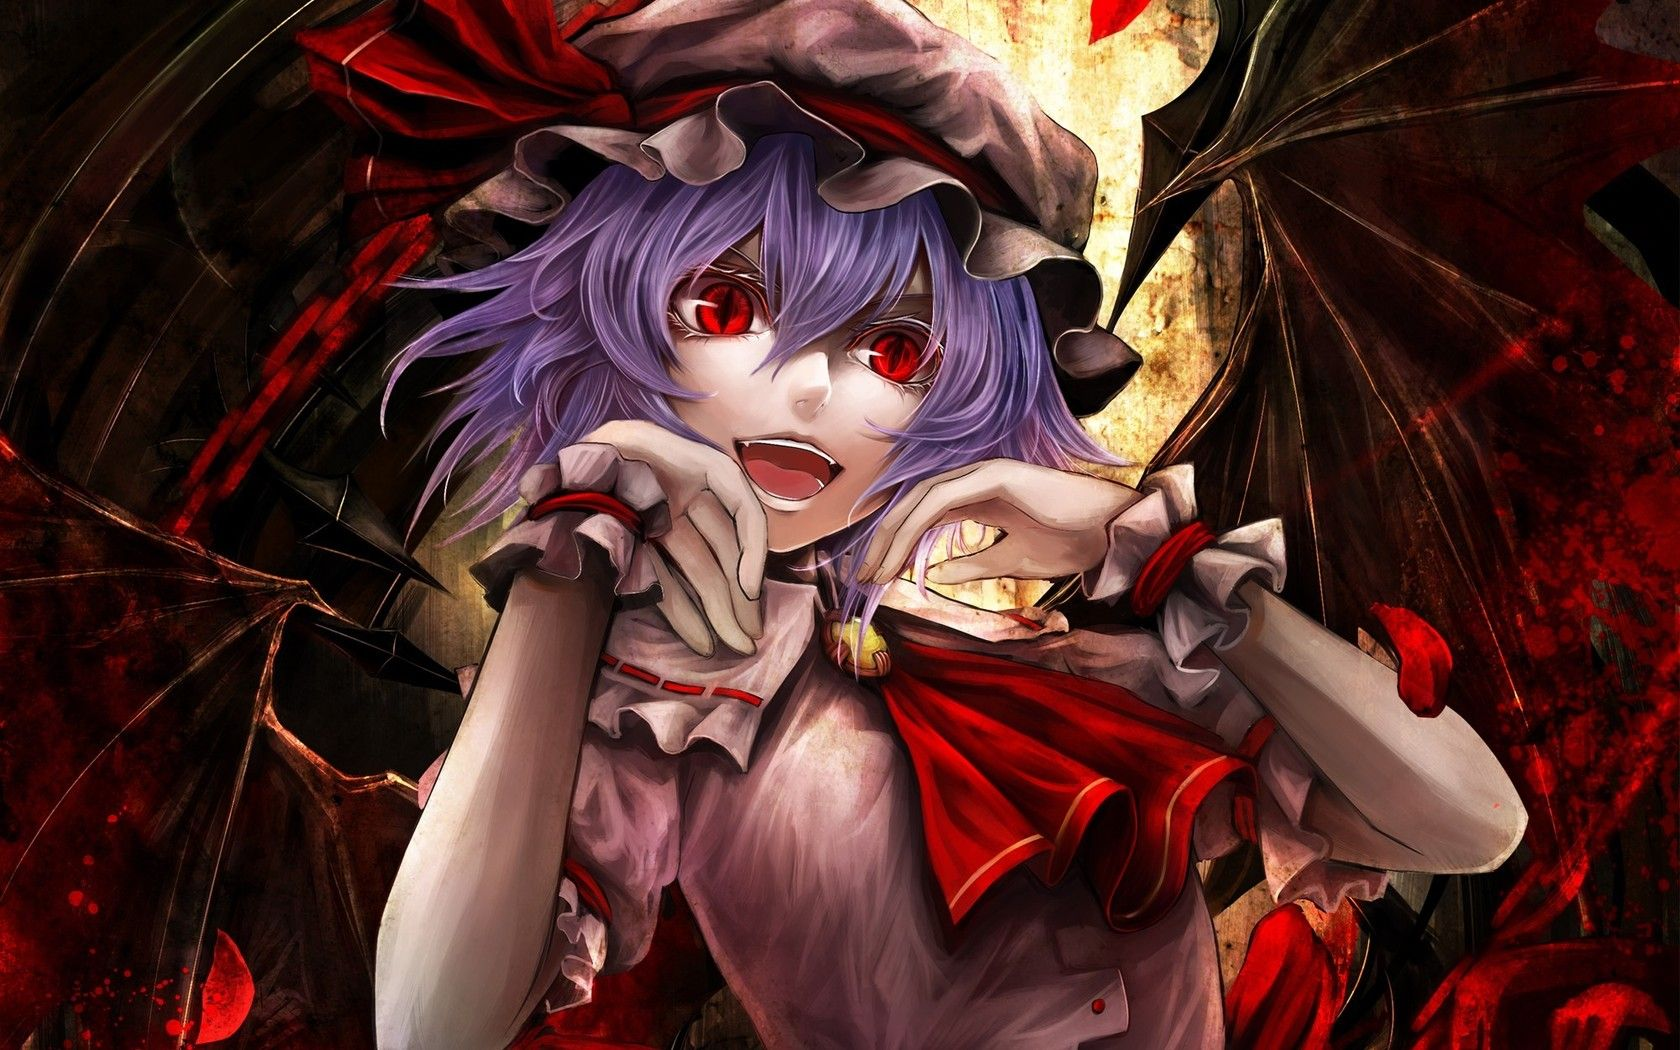 anime demon Download wallpaper Art, girl, daemon,